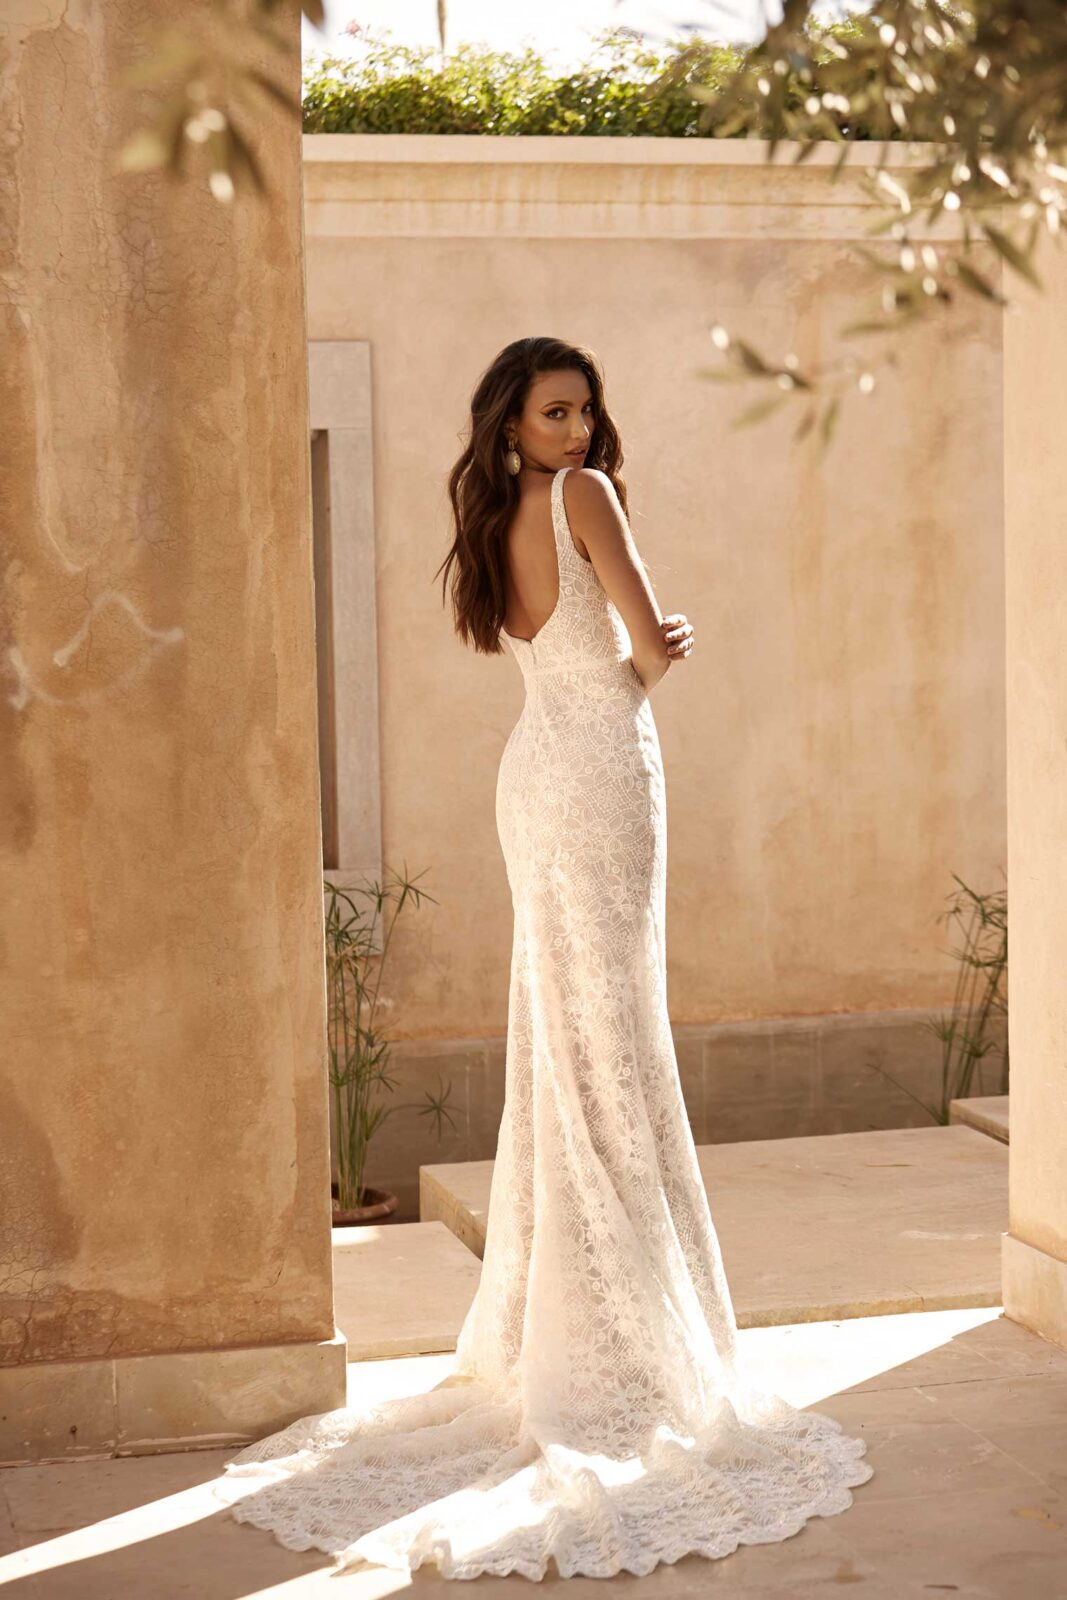 ADELAIDE-ML15010-FULL-LENGTH-FITTED-GOWN-WITH-LOW-BACK-AND-DETACHABLE-OVERSKIRT-SLEEVES-AND-BELT-WEDDING-DRESS-MADI-LANE-BRIDAL3